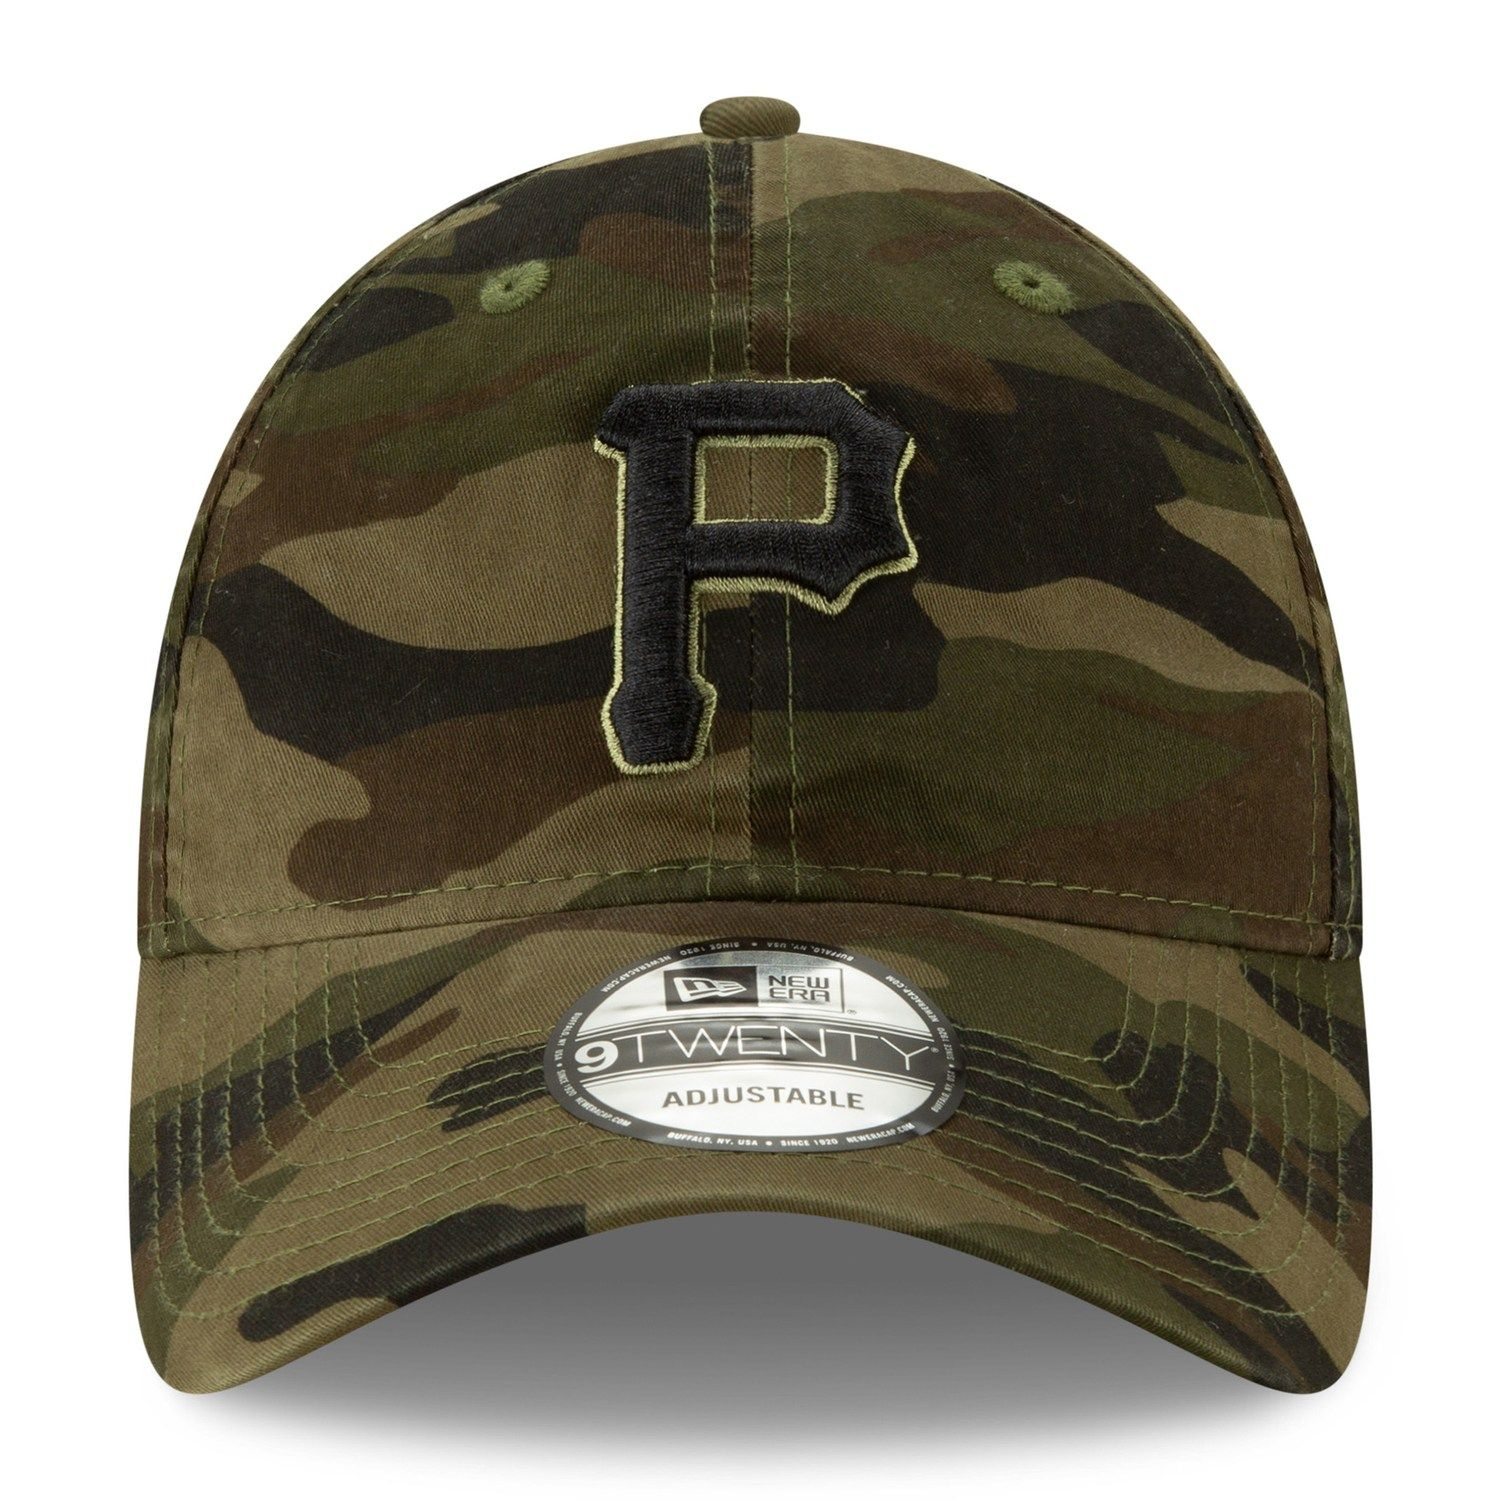 quality design 9b1b2 a6439 Adult New Era Pittsburgh Pirates Core Classic Camo 9TWENTY Baseball Cap   Affiliate  Pirates,  Affiliate,  Core,  Pittsburgh,  Adult